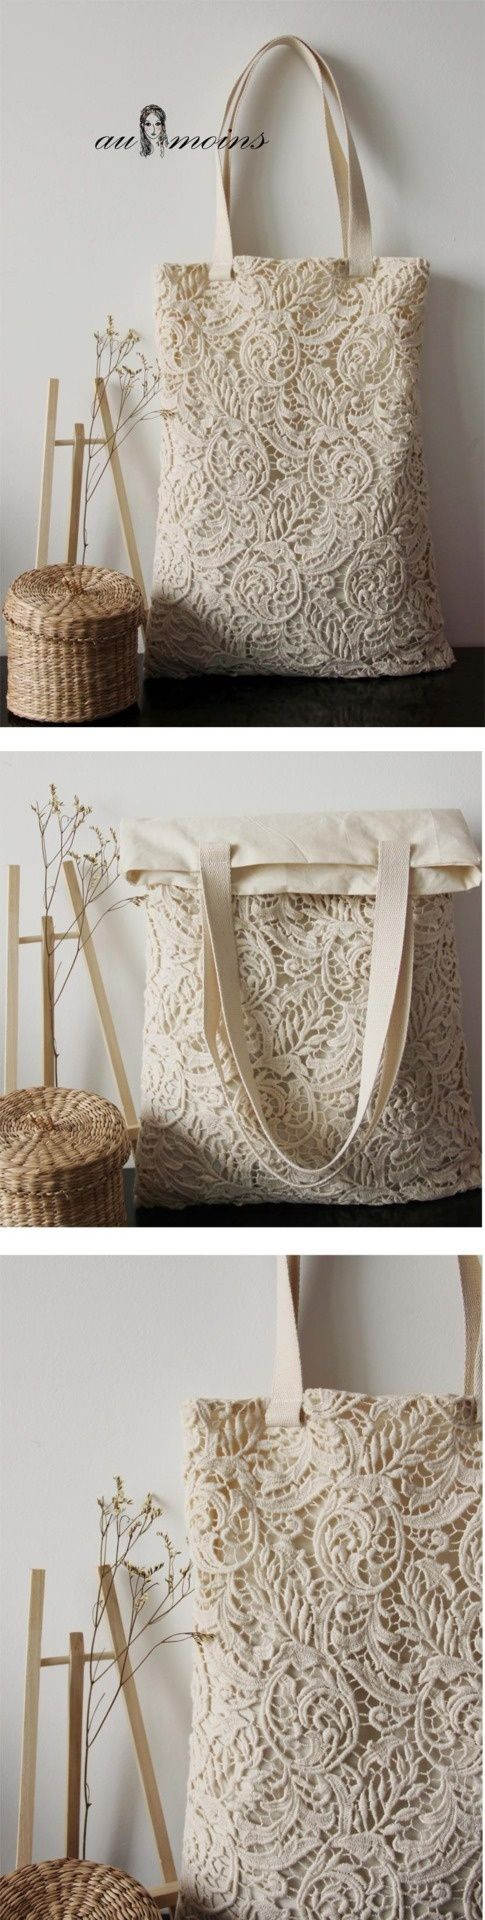 This lace tote could be a fantastic diy idea maybe reclaim an old